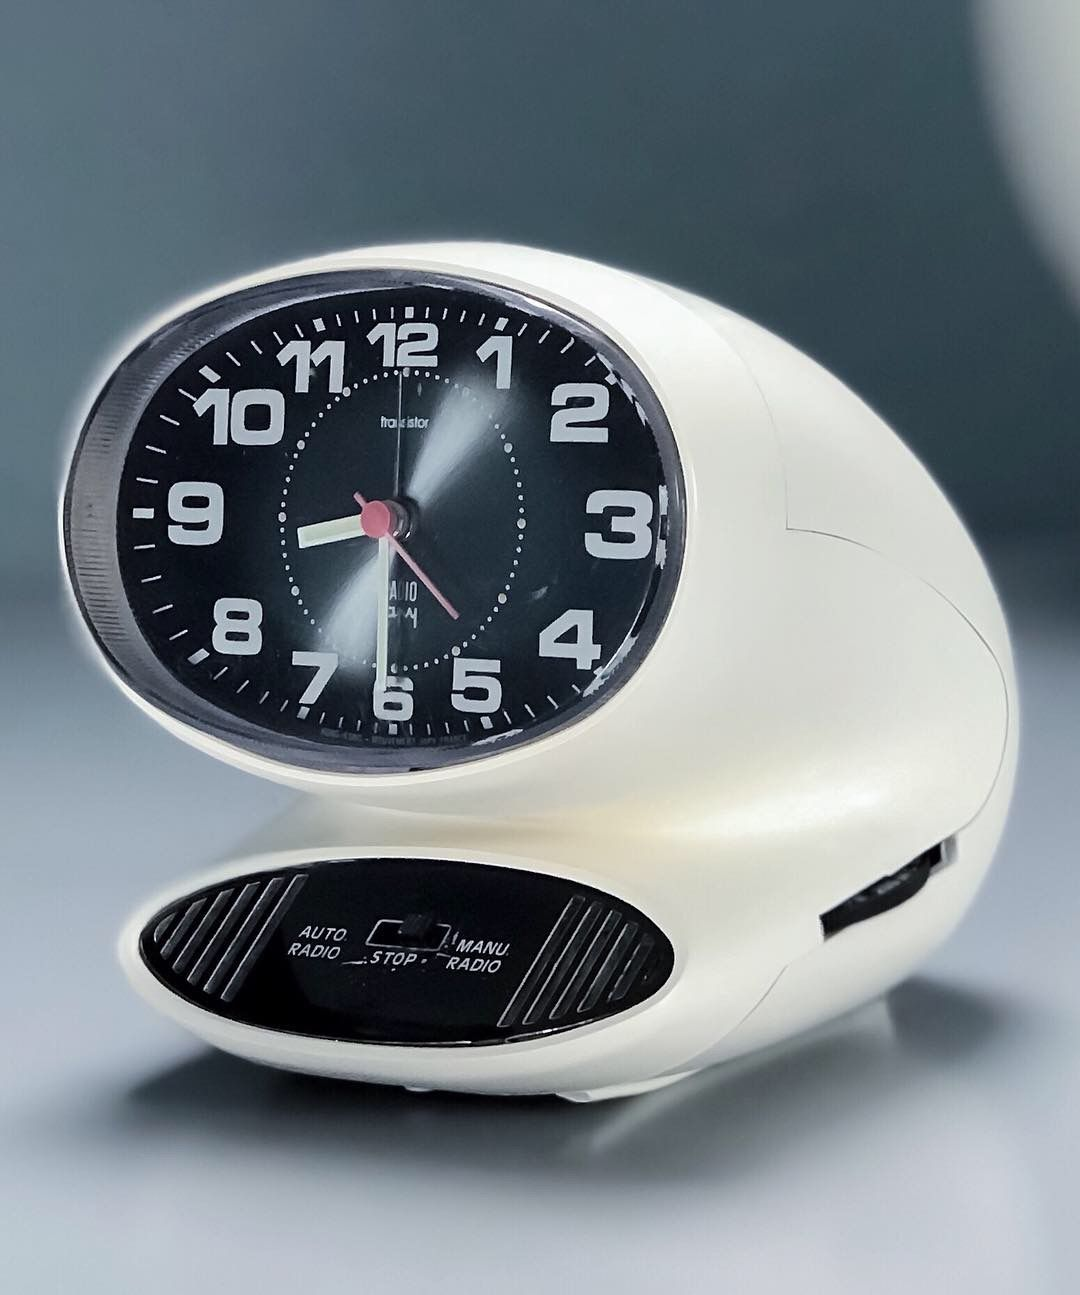 70s Radio Alarm Clock By Japy A Great Piece Of Space Age Design